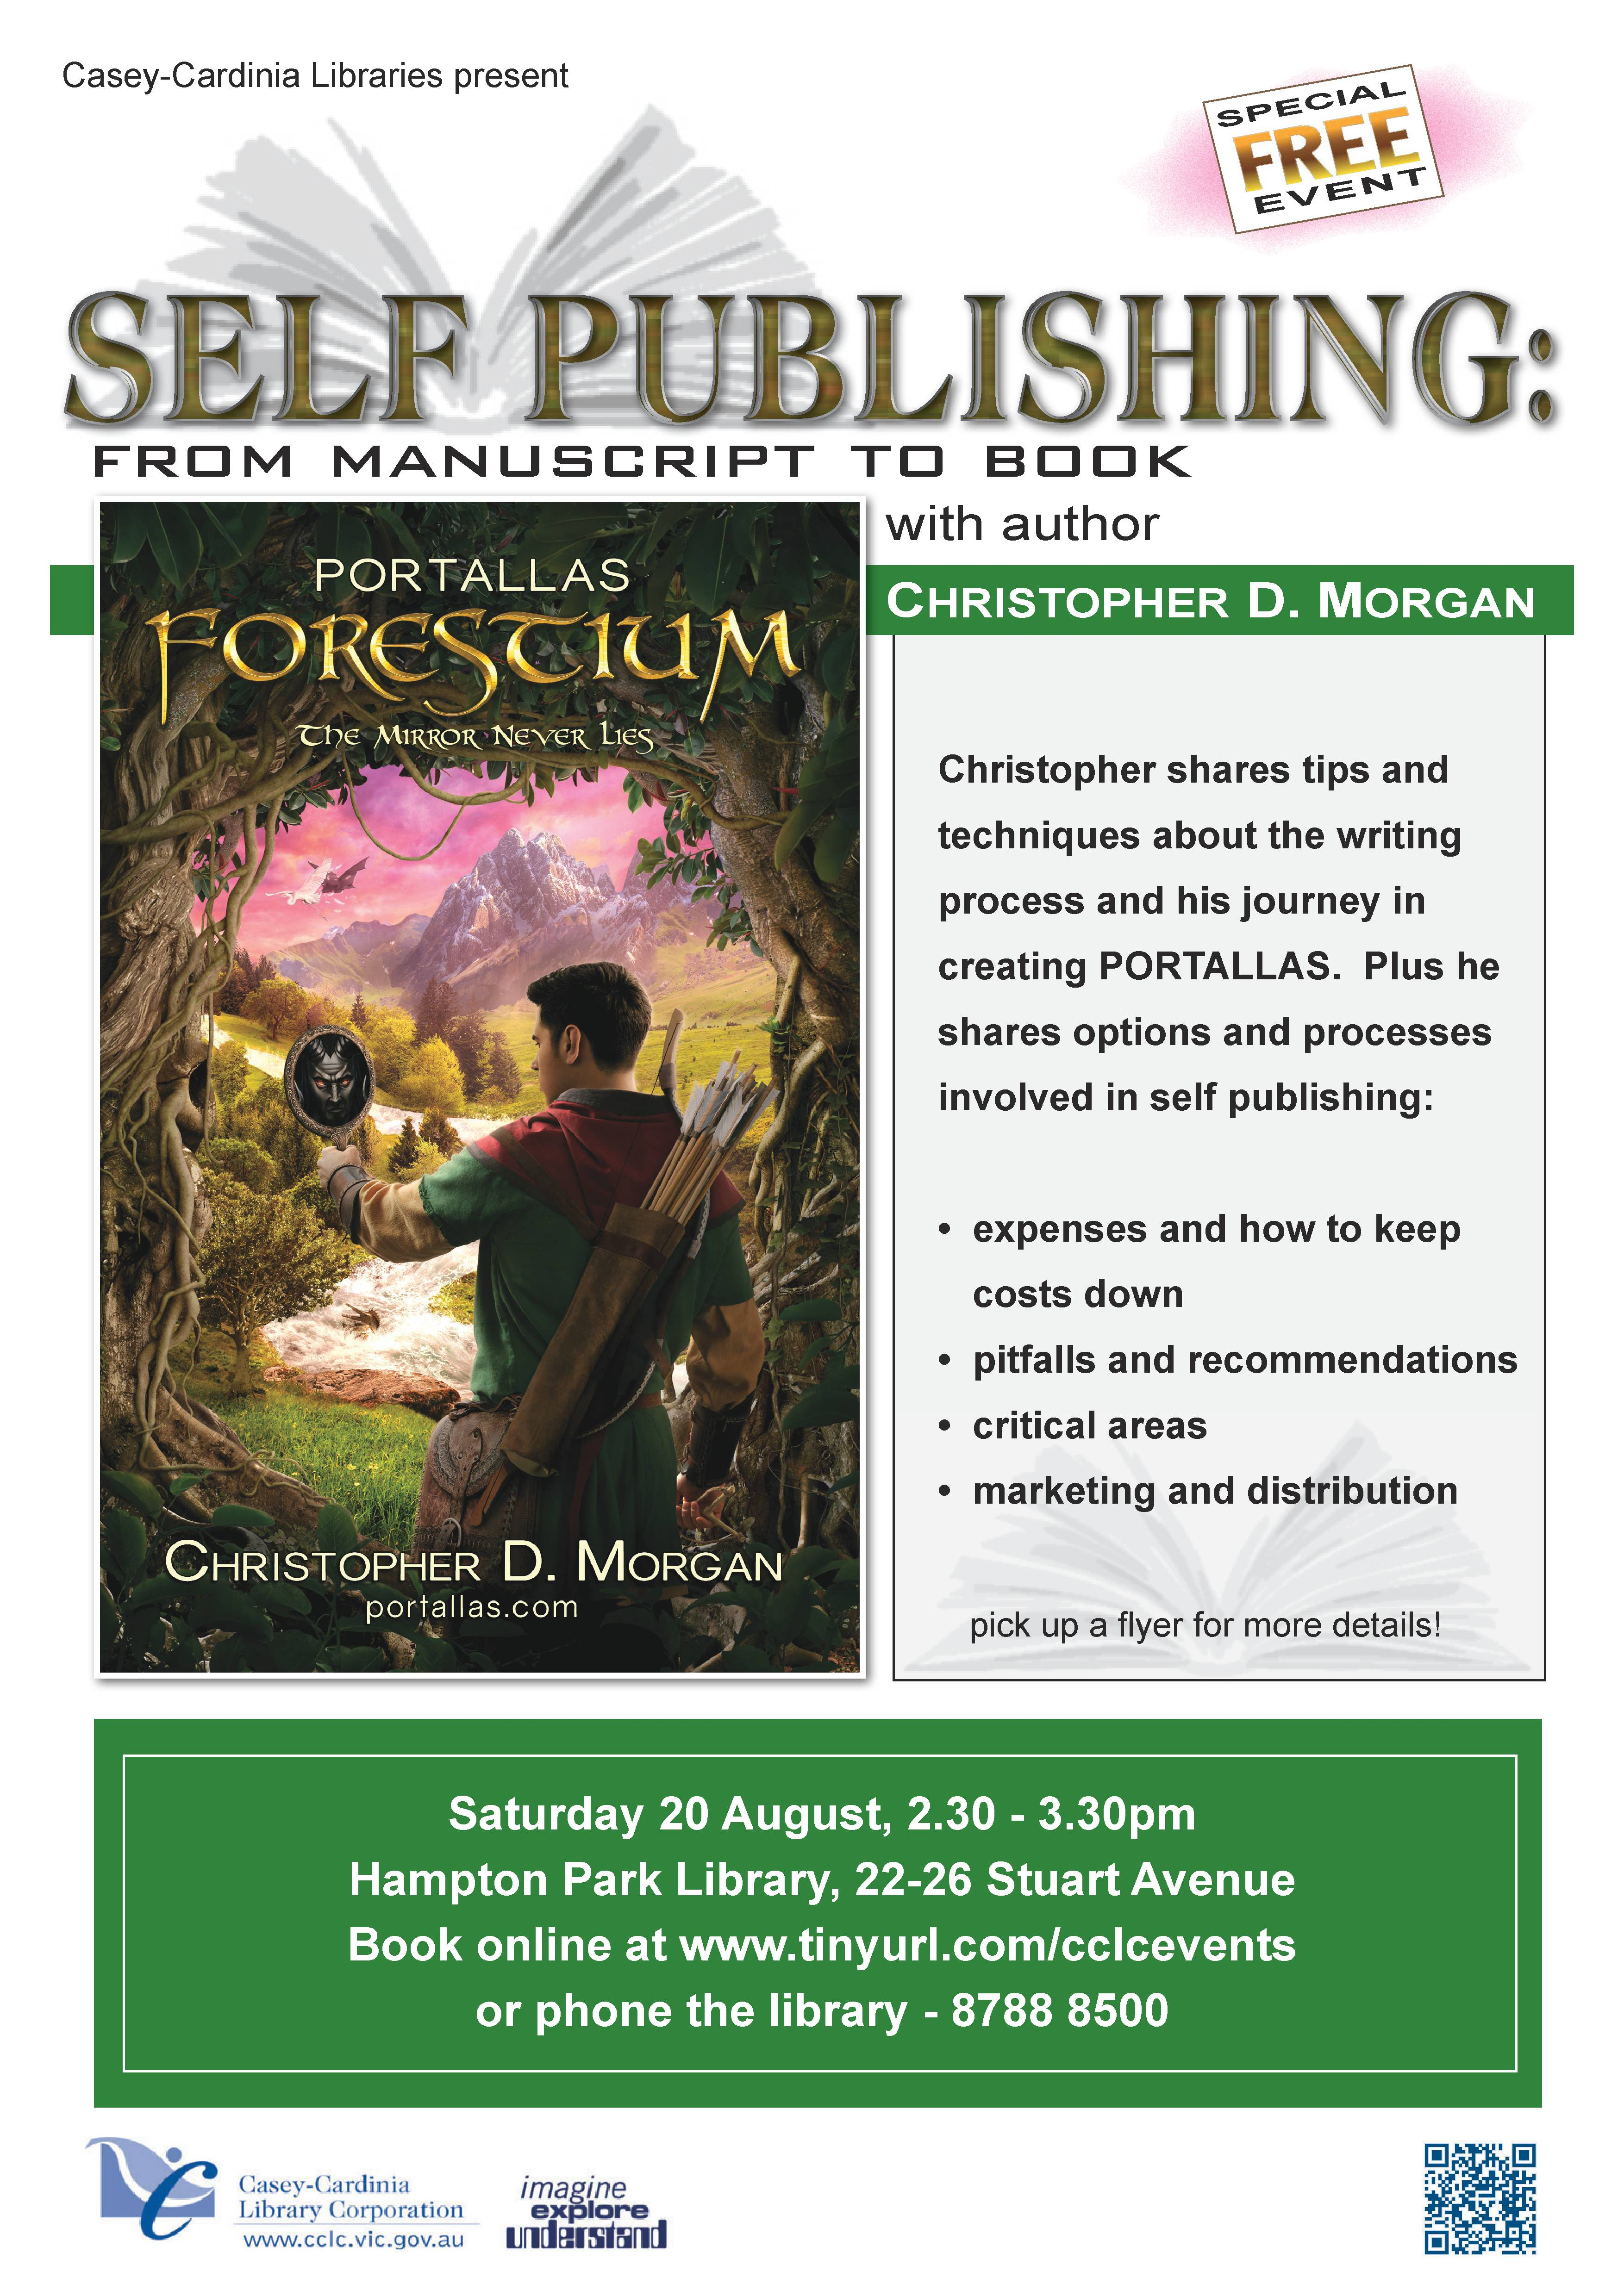 Self publishing - learn how! Click to register for this FREE event.